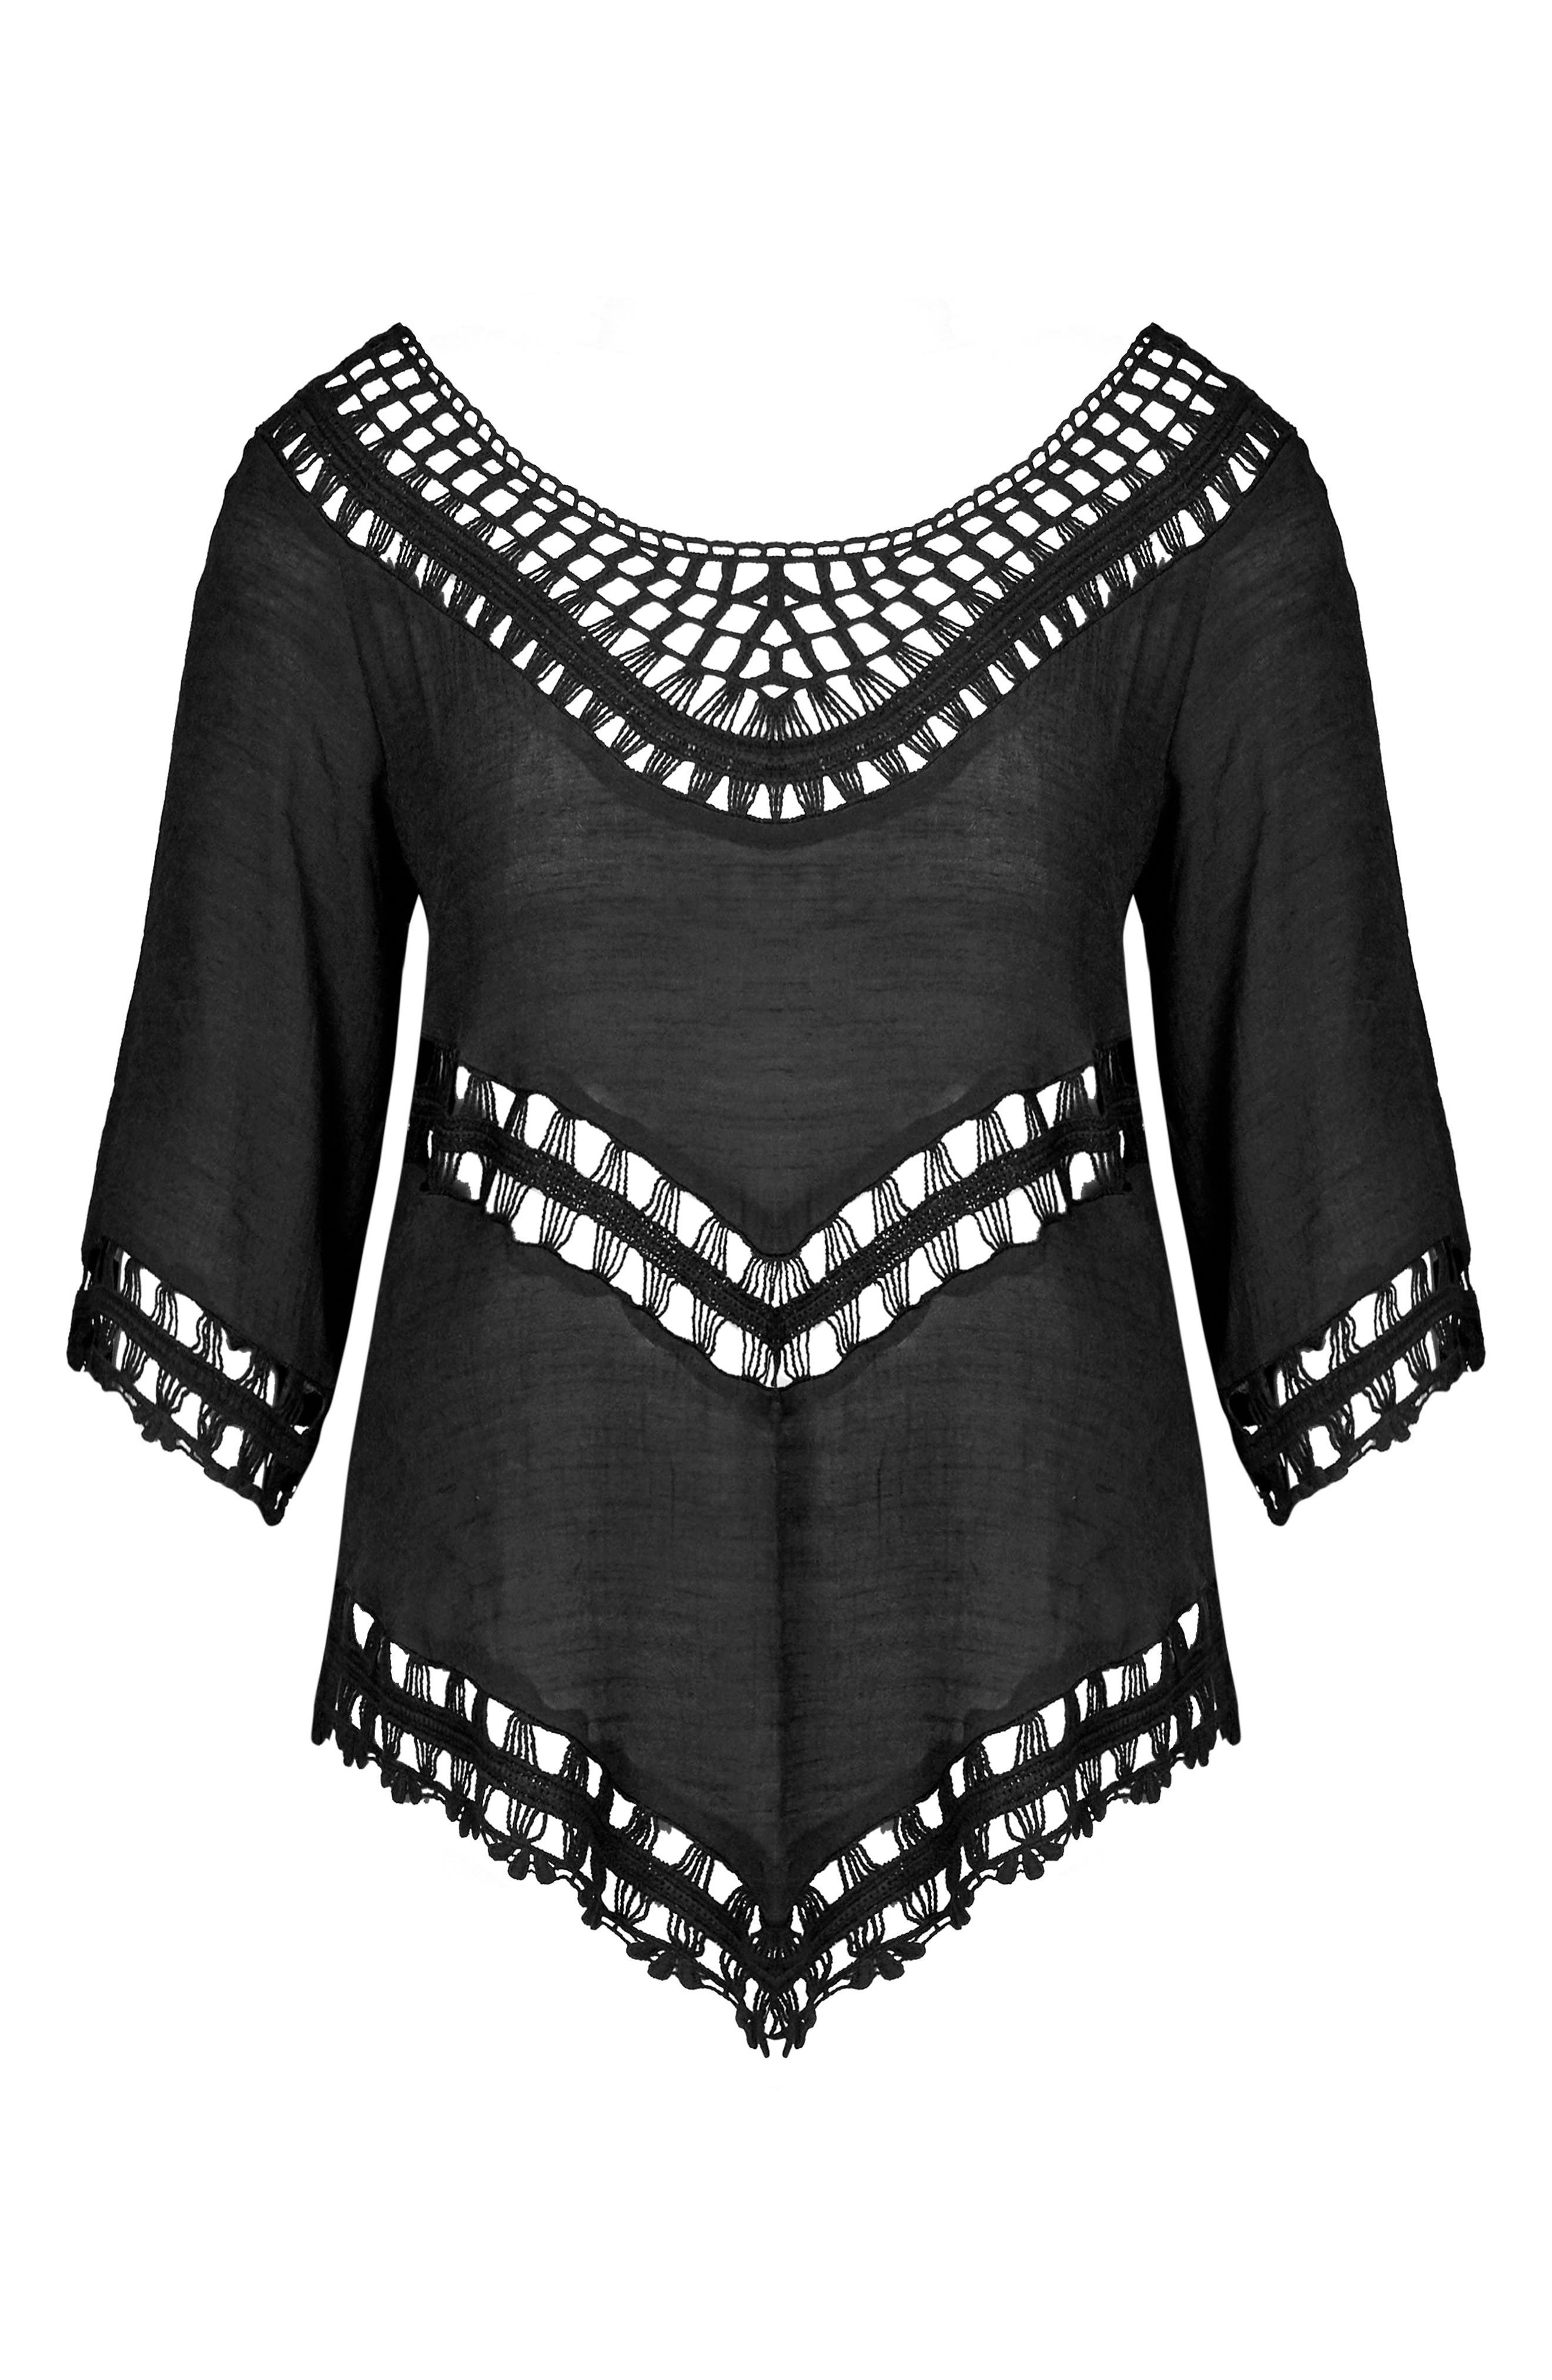 Sweet Vibe Crochet Top,                             Alternate thumbnail 3, color,                             BLACK